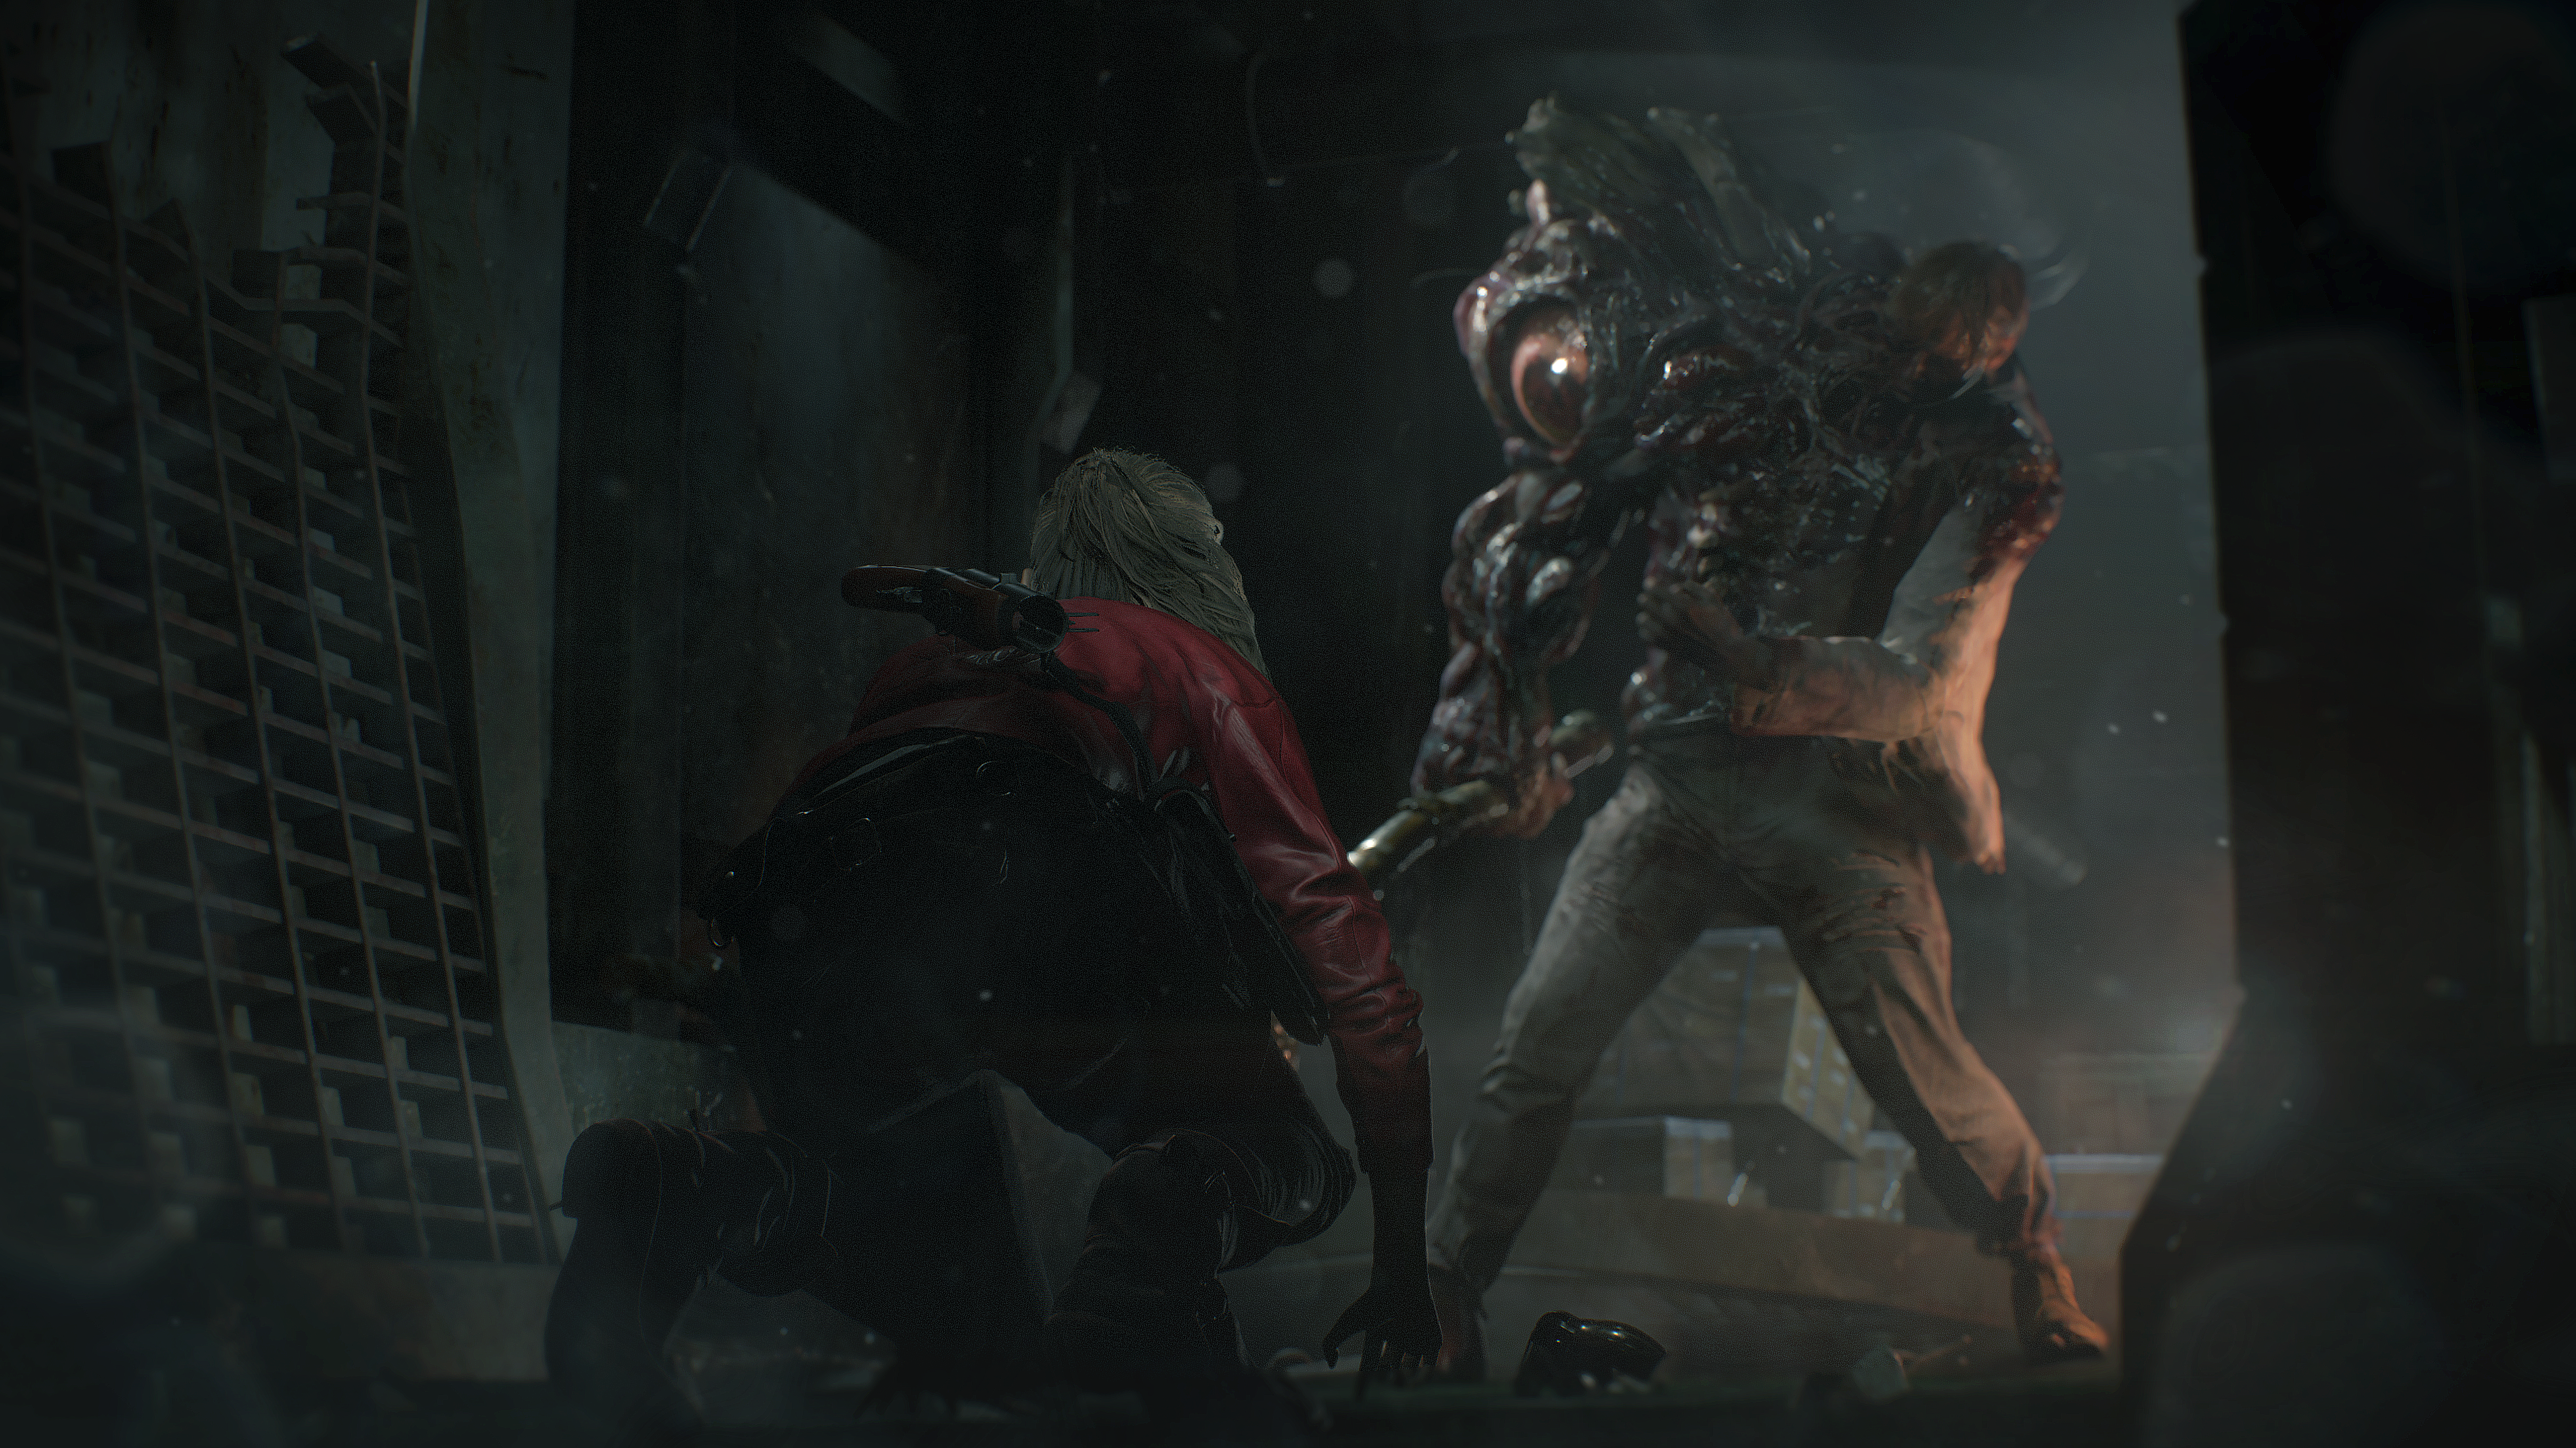 Resident Evil 2 Claire Redfield Details 10